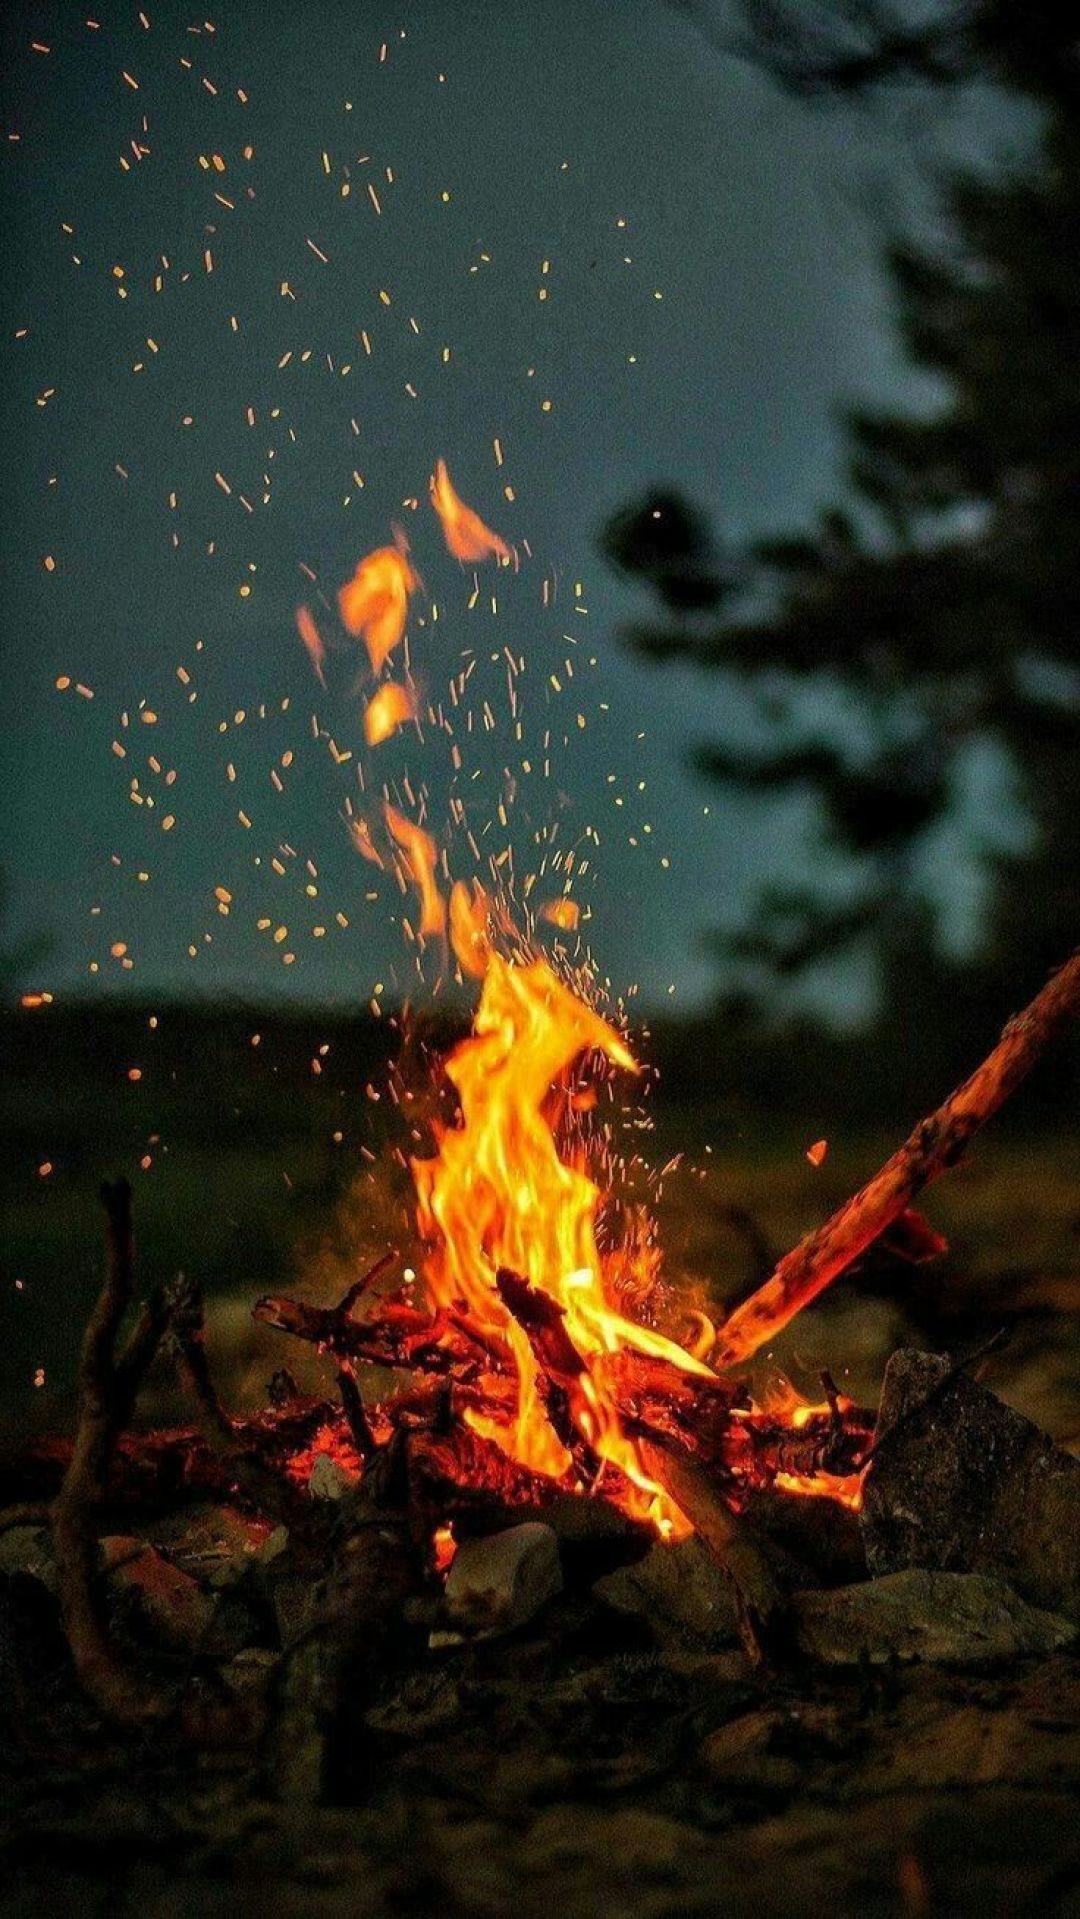 Fire Android Iphone Desktop Hd Backgrounds Wallpapers 1080p 4k 112763 Hdwall In 2020 Camping Wallpaper Wallpaper Iphone Love Aesthetic Wallpapers